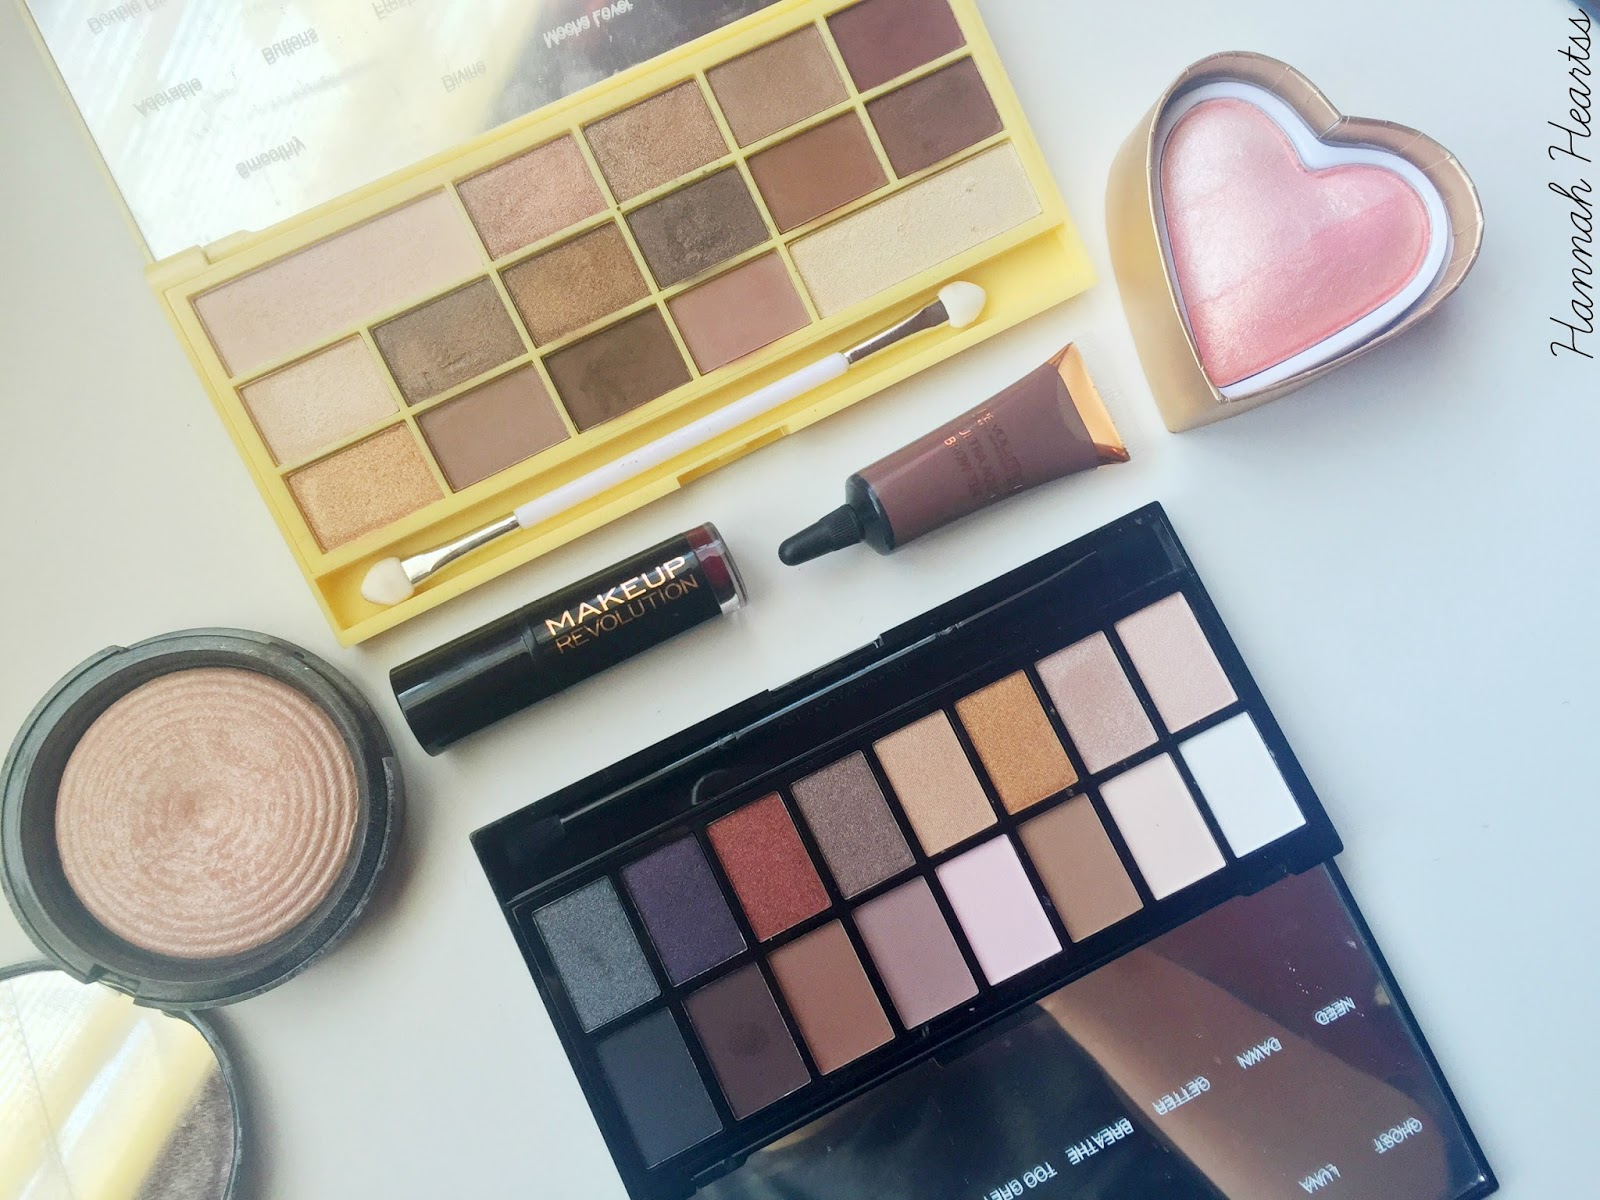 Brand Focus: Makeup Revolution